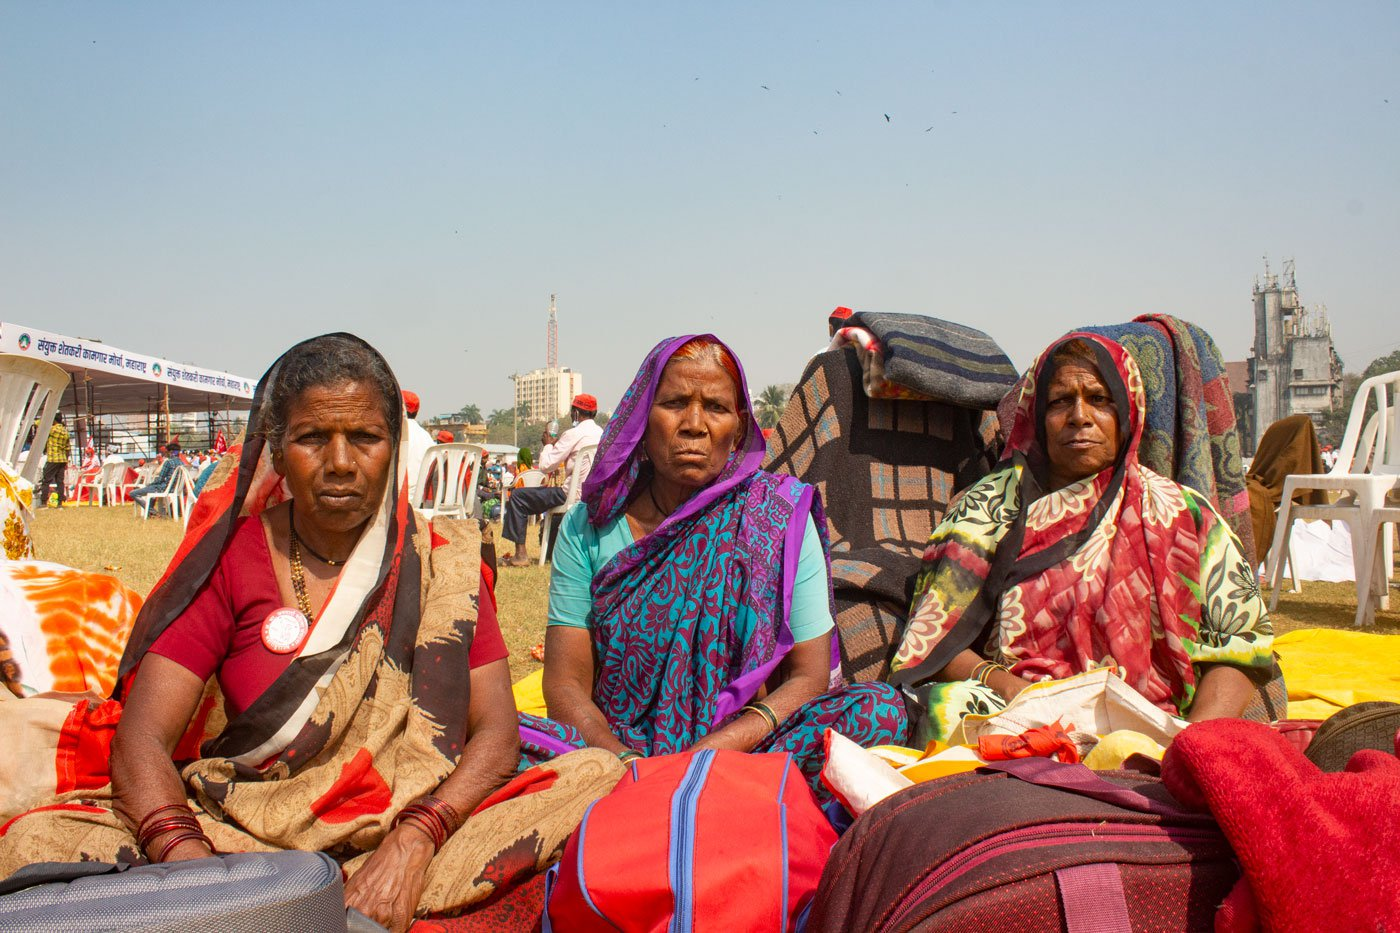 Despite land rights being the main concern for Bhima Tandale, Suman Bombale and Lakshmi Gaikwad – Adivasi farm widows from Nashik – they are in Mumbai to support the protest against the new farm laws